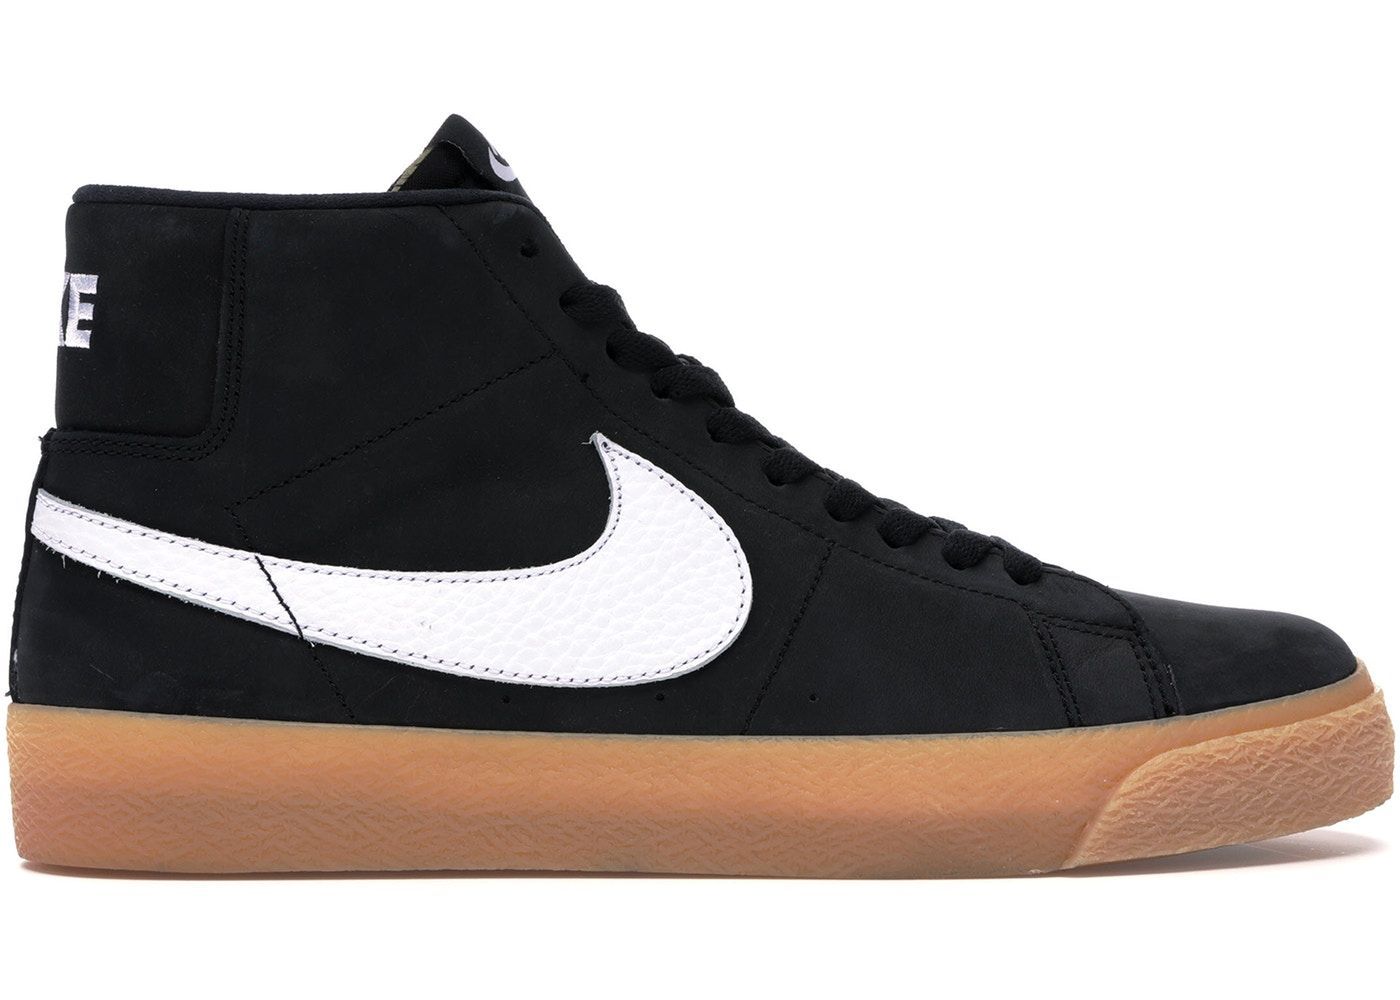 c6d589d5 Check out the Nike SB Zoom Blazer Mid Orange Label available on StockX